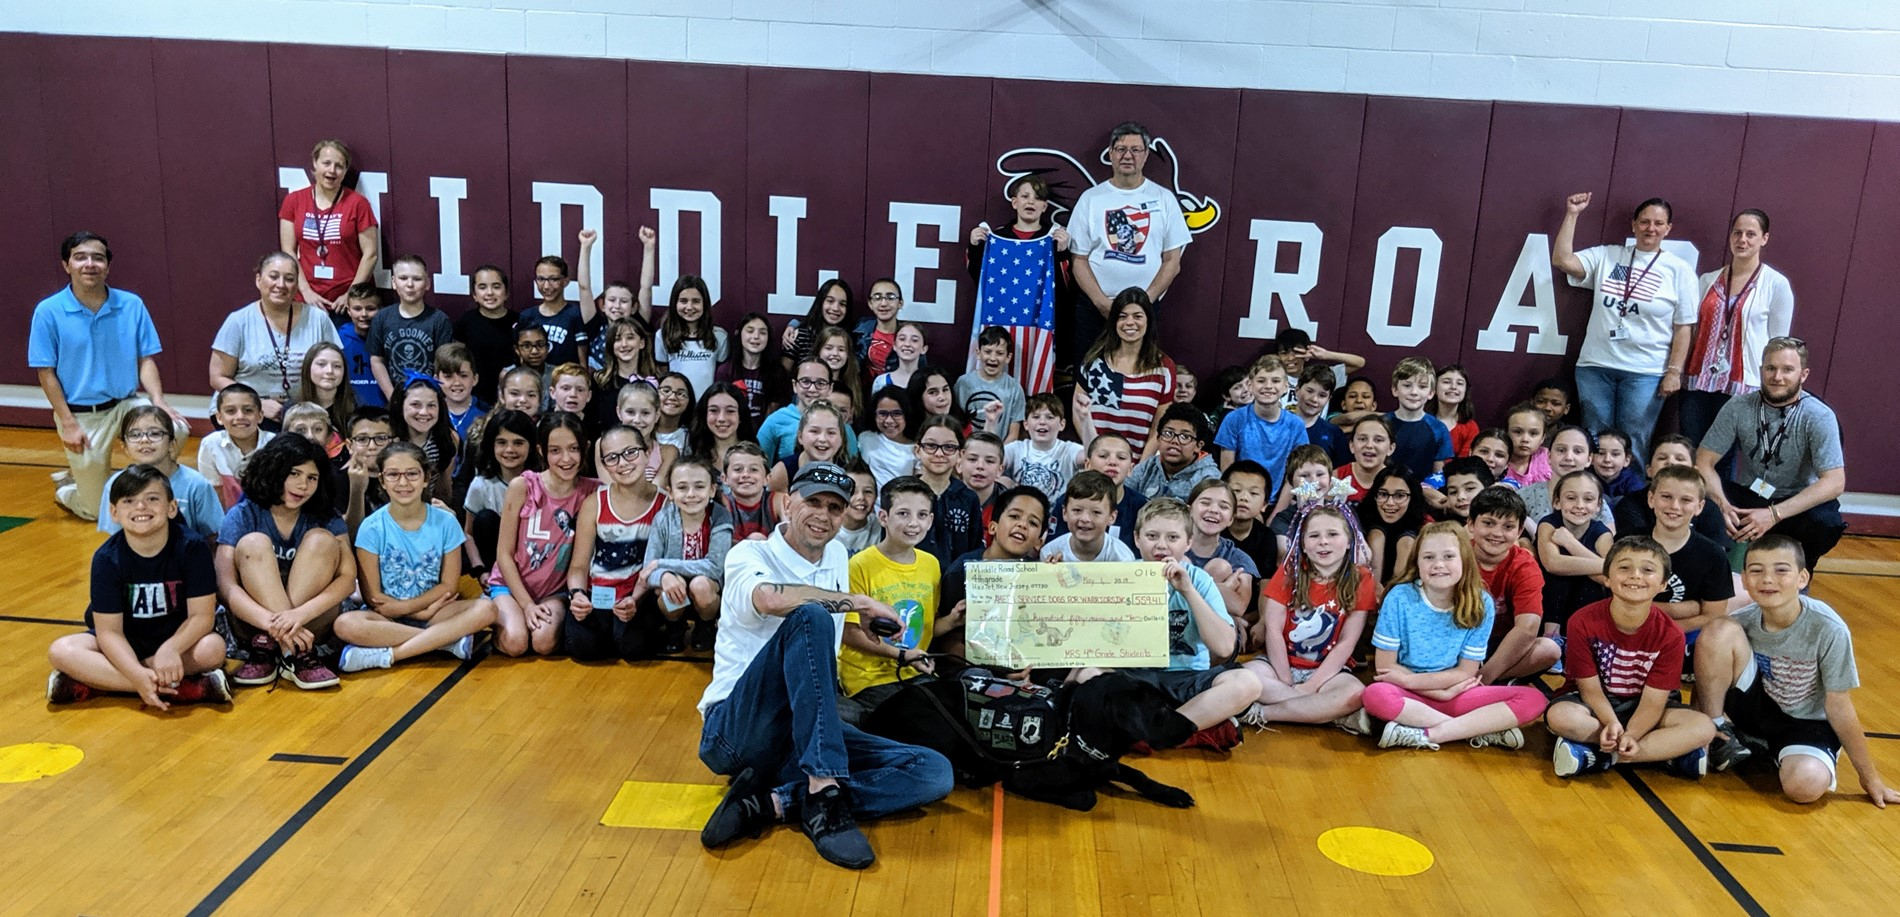 4th Grade students raised $560 for AHEPA Service Dogs for Veterans